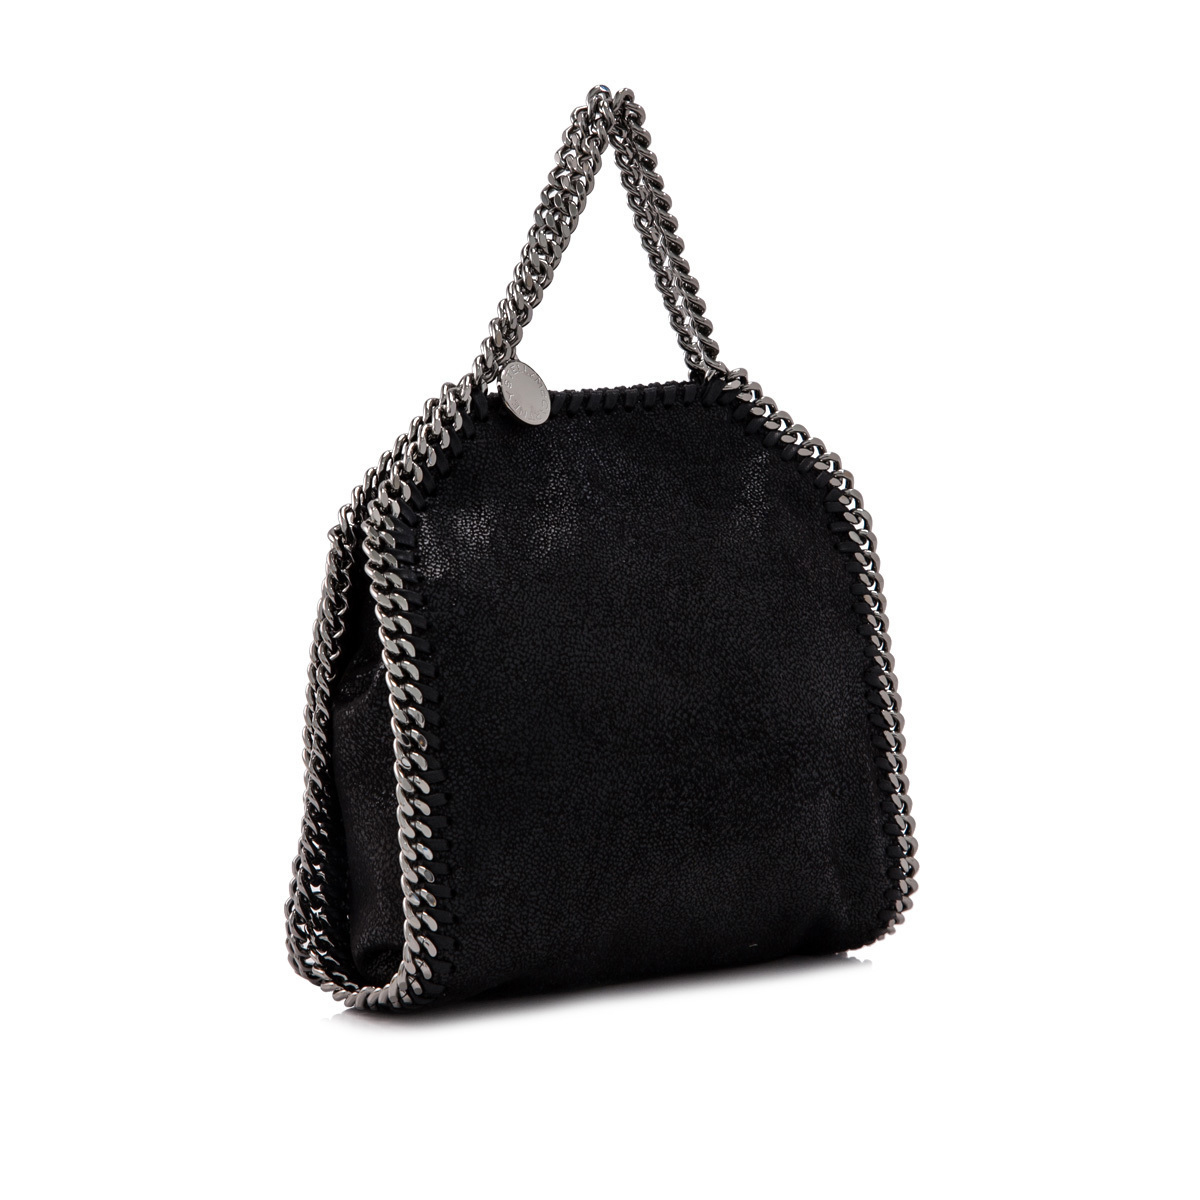 関税送料込 STELLA McCARTNEY FALABELLA TINY TOTE BLACK SILVER